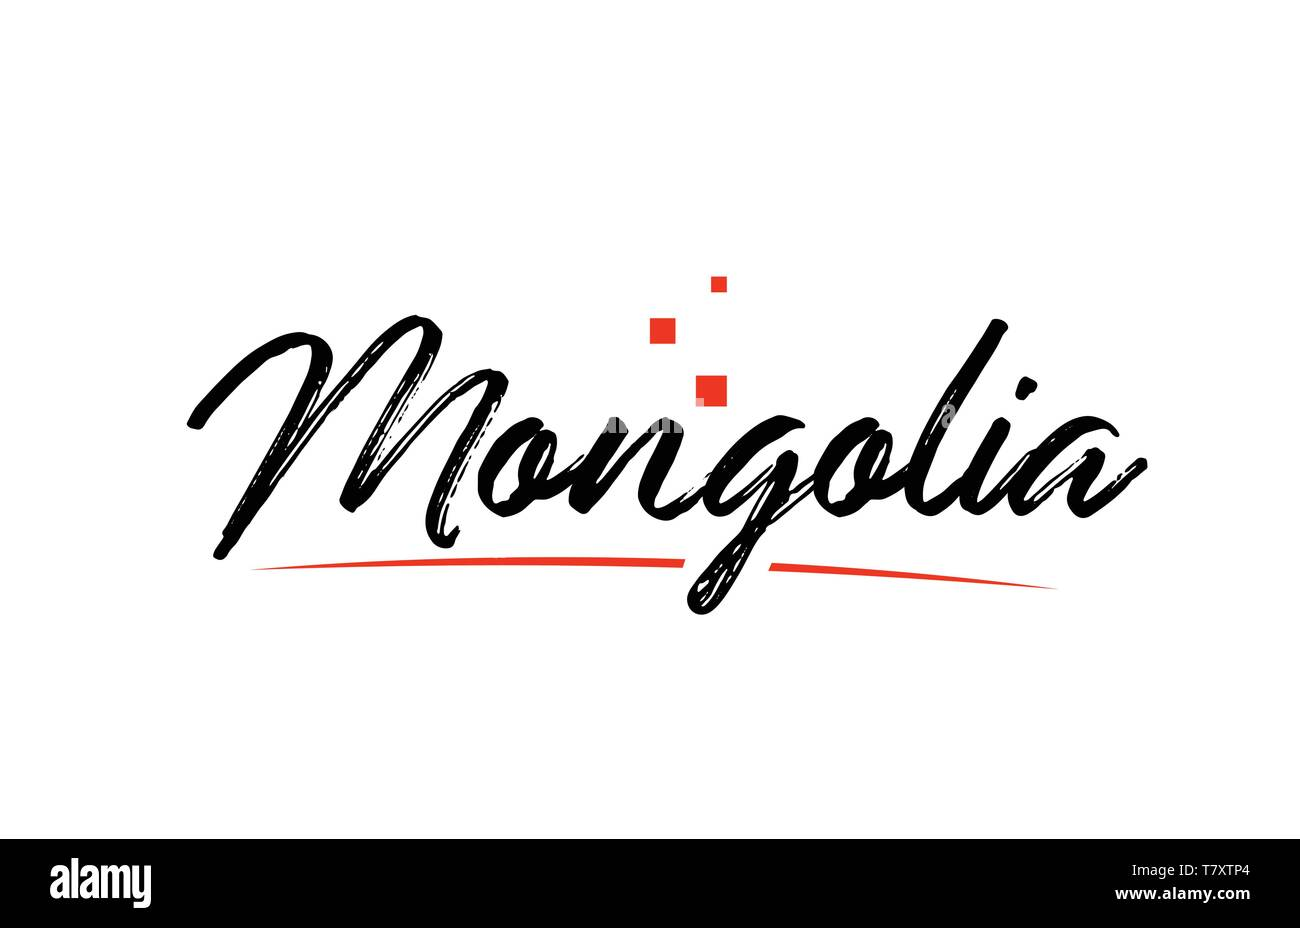 Mongolia country typography word text suitable for logo icon design - Stock Vector